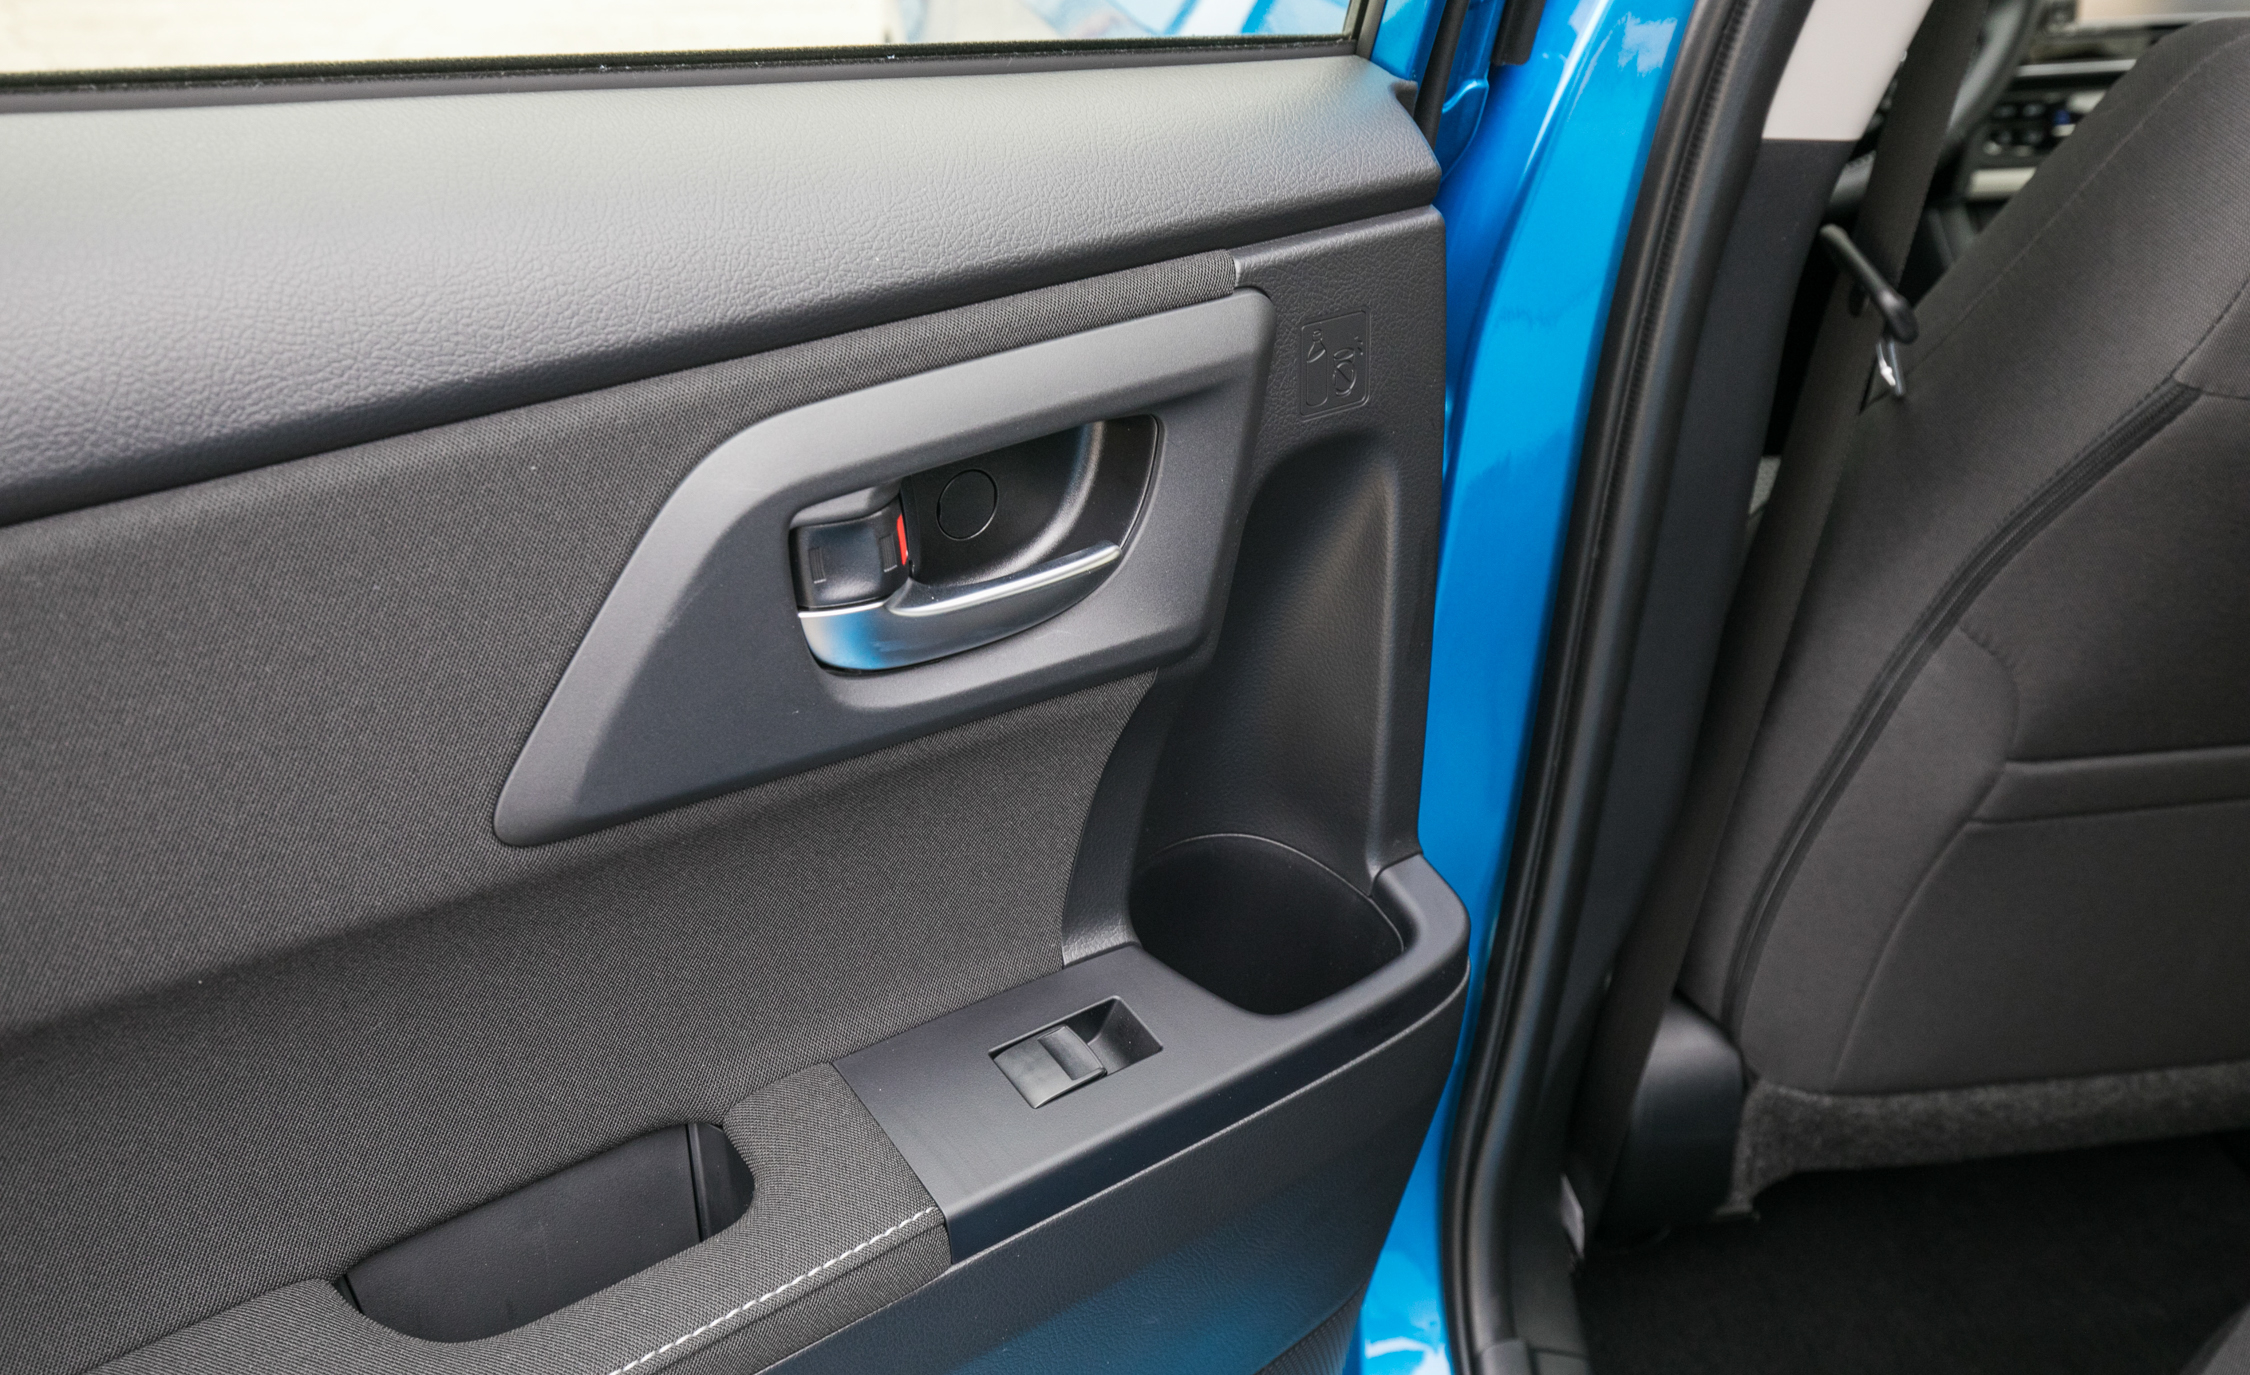 2017 Toyota Corolla IM Hatchback Interior View Door Trim (Photo 42 of 52)